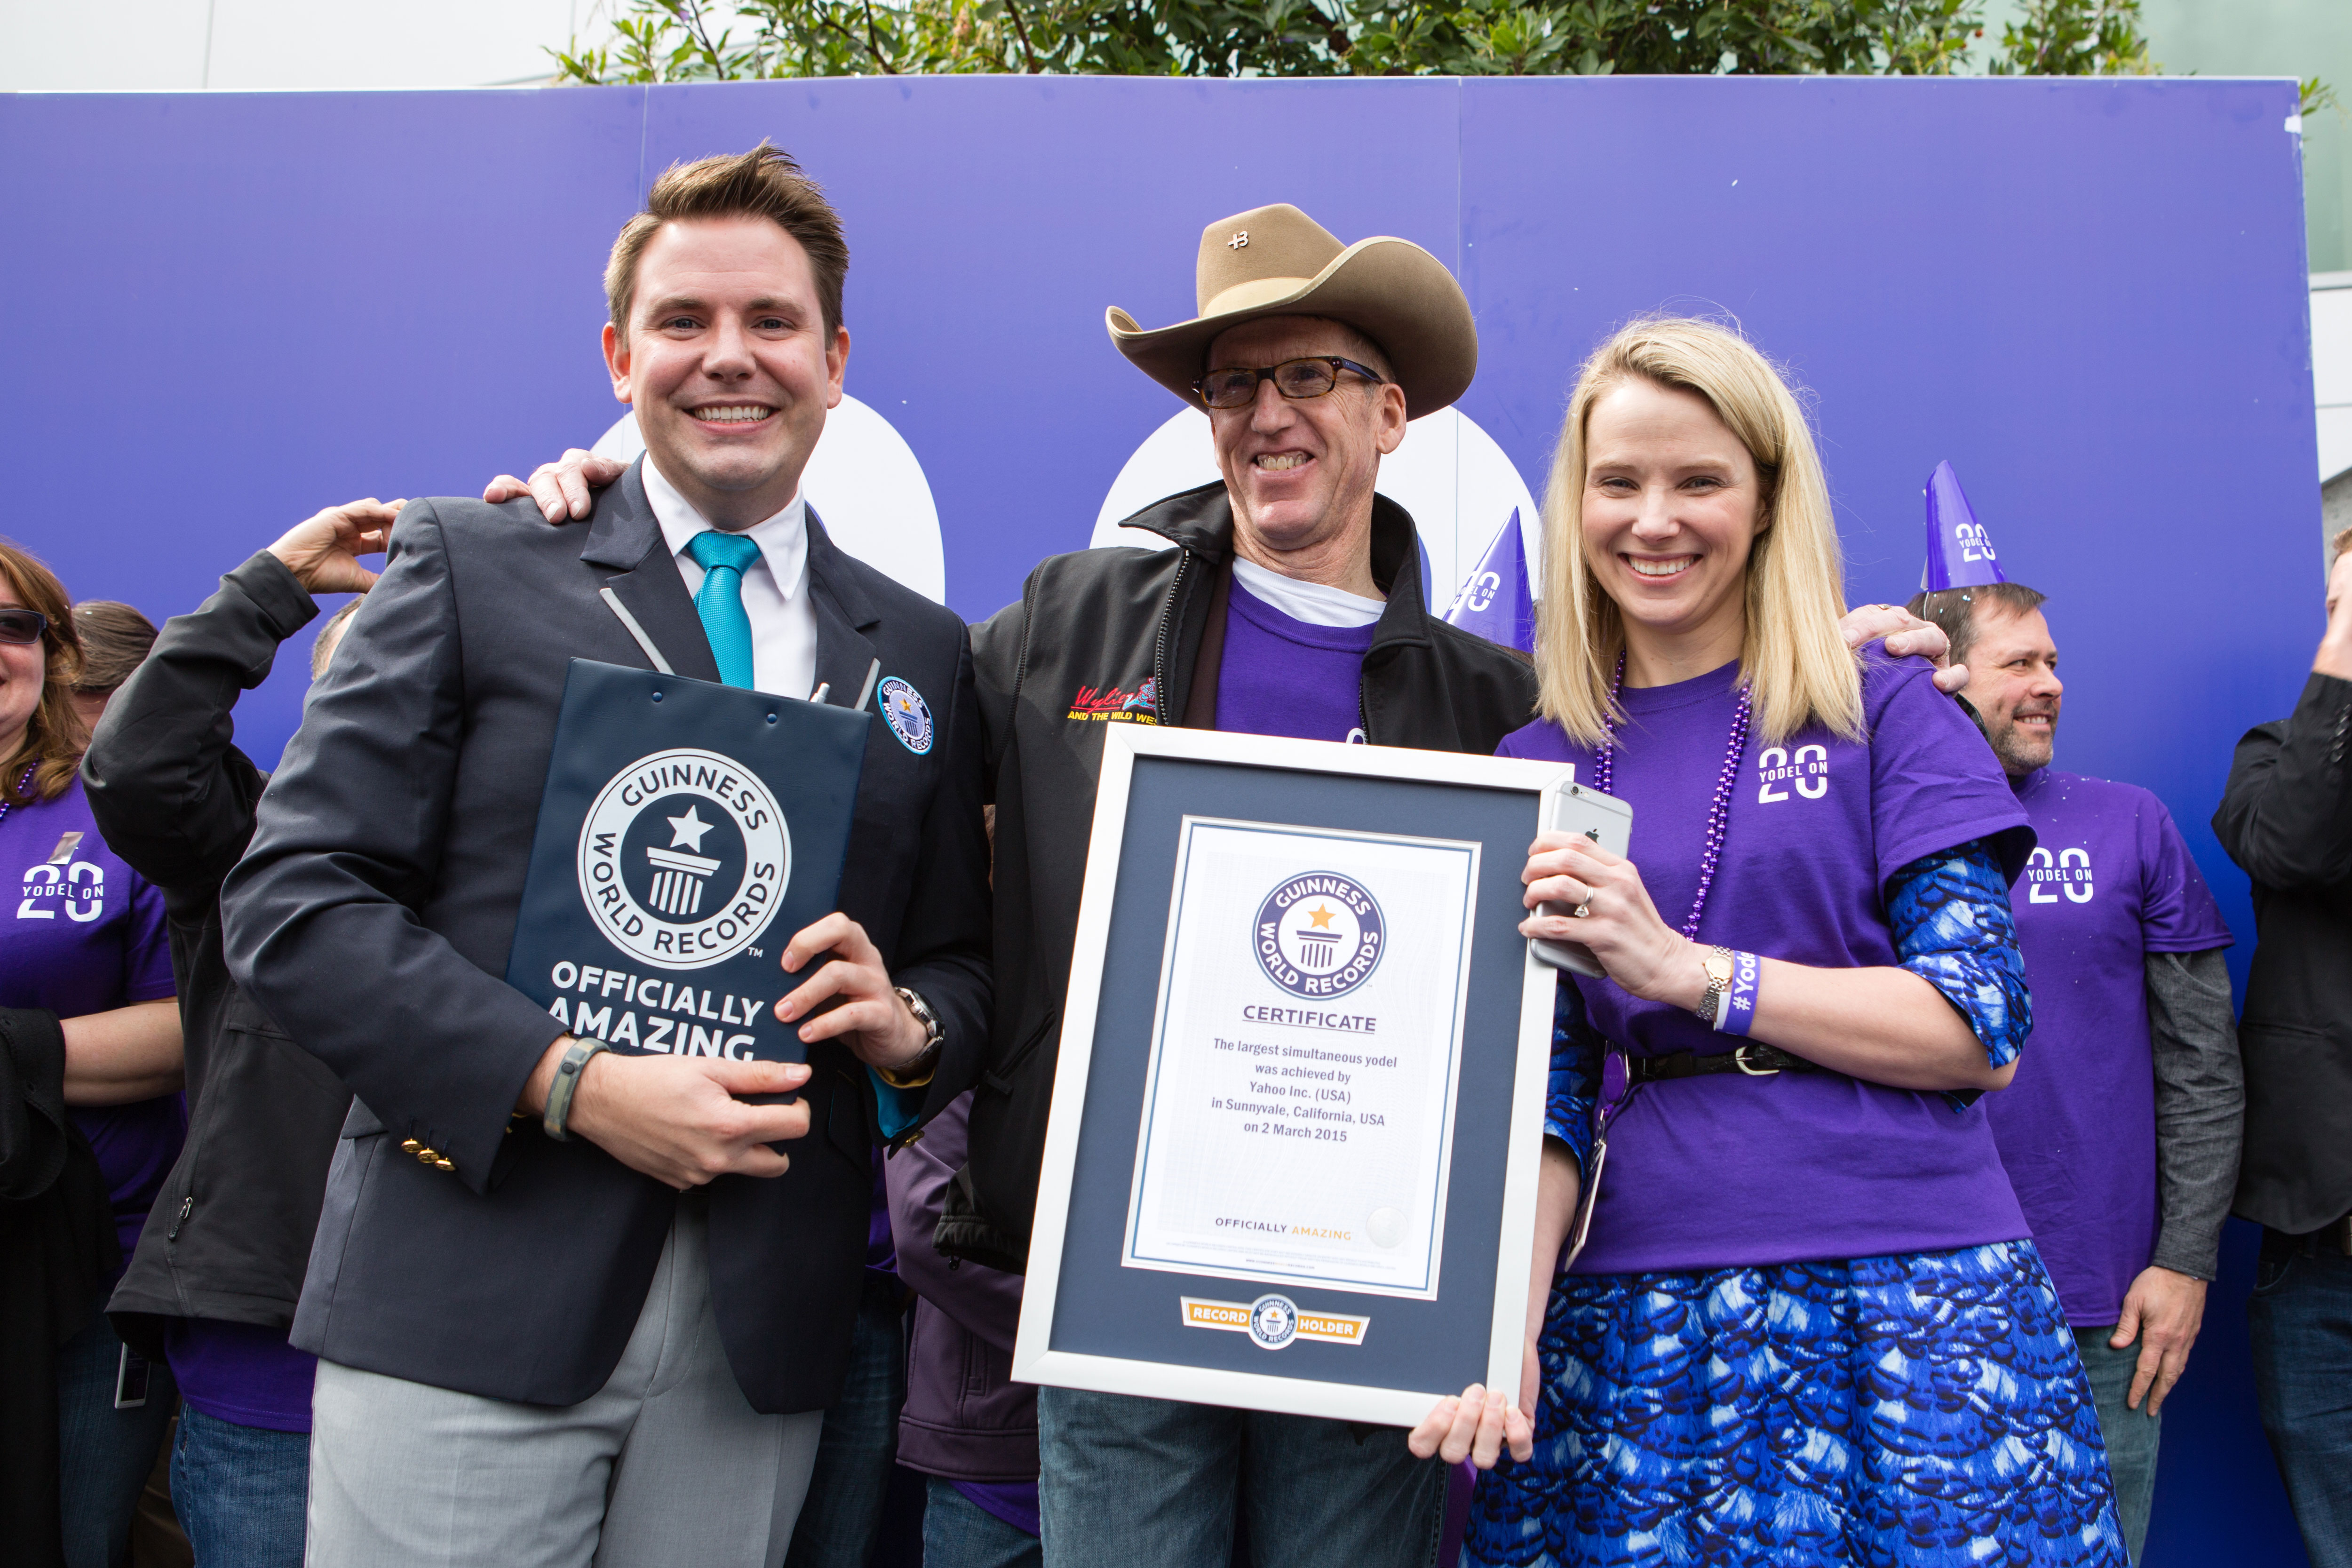 Marissa Mayer Yahoo yodel world record attempt certificate presentation